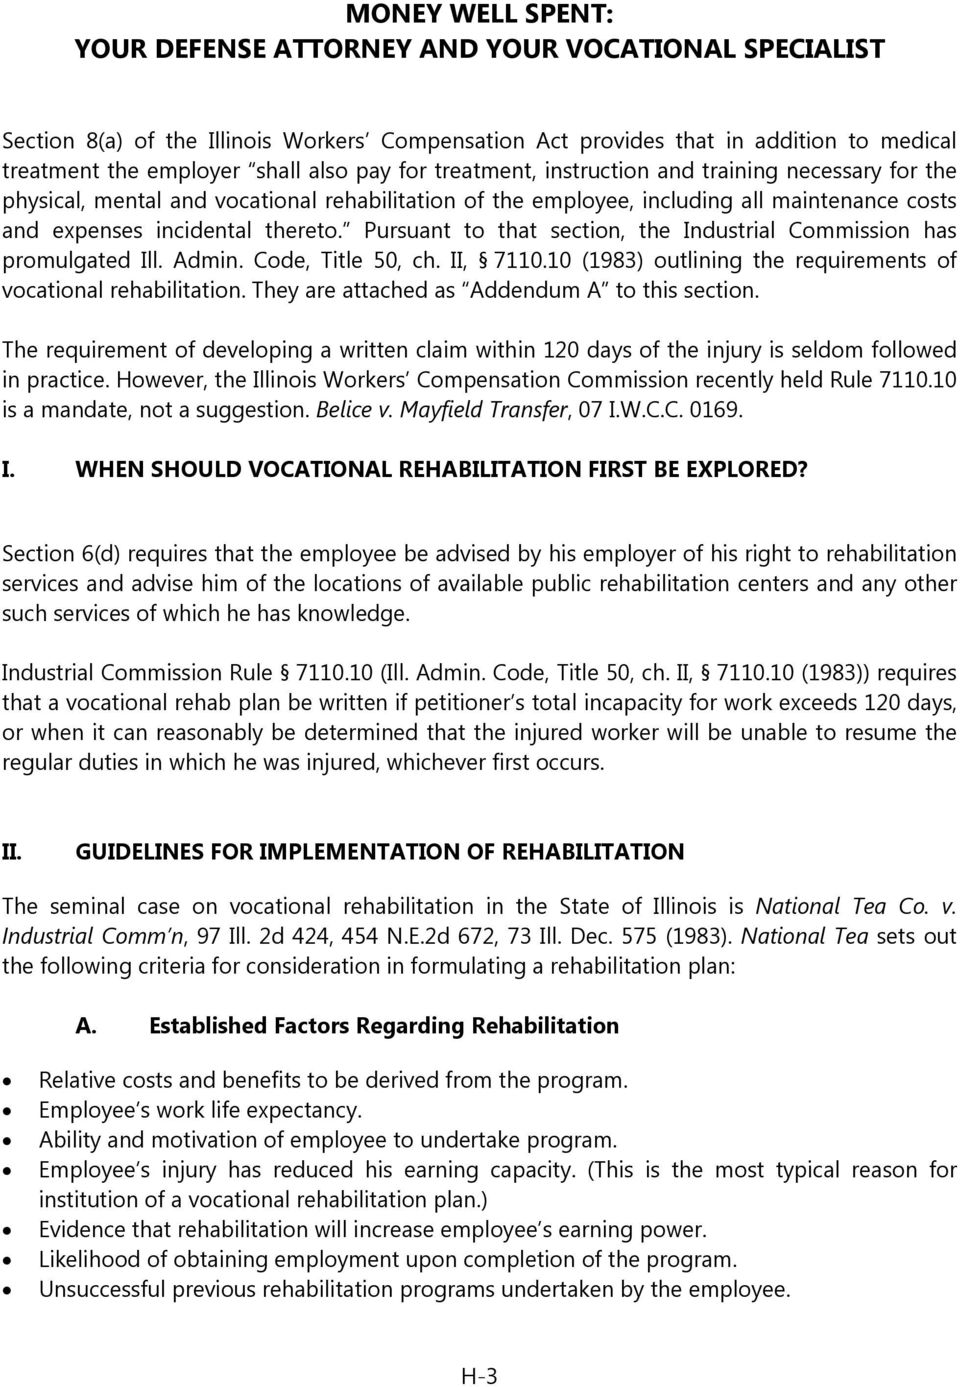 Pursuant to that section, the Industrial Commission has promulgated Ill. Admin. Code, Title 50, ch. II, 7110.10 (1983) outlining the requirements of vocational rehabilitation.